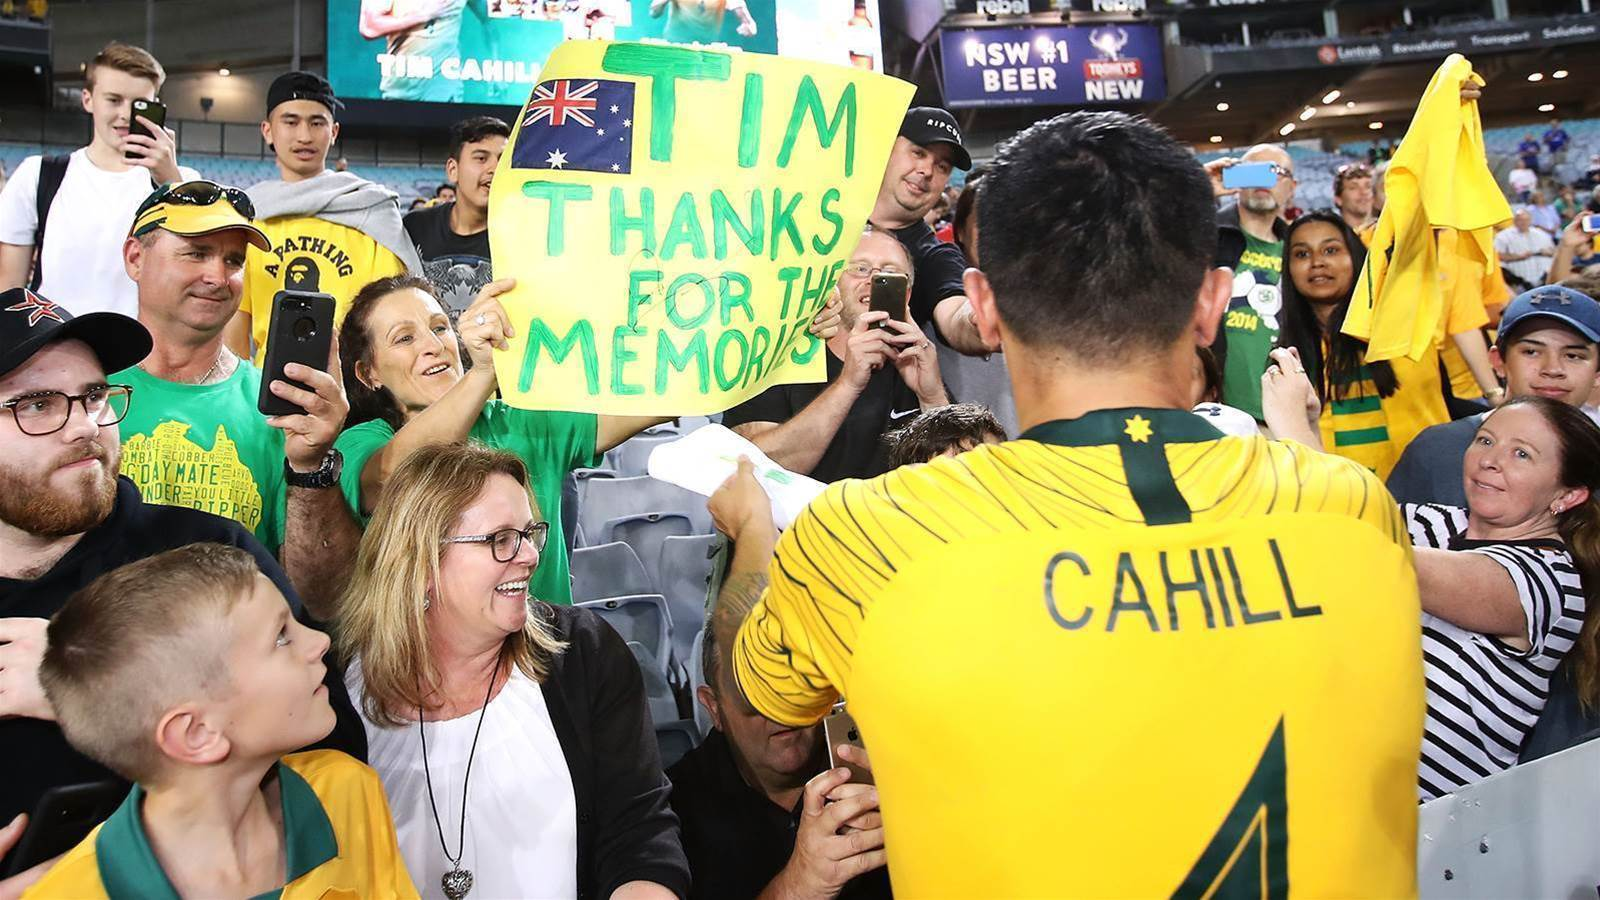 Cahill calls it quits for good